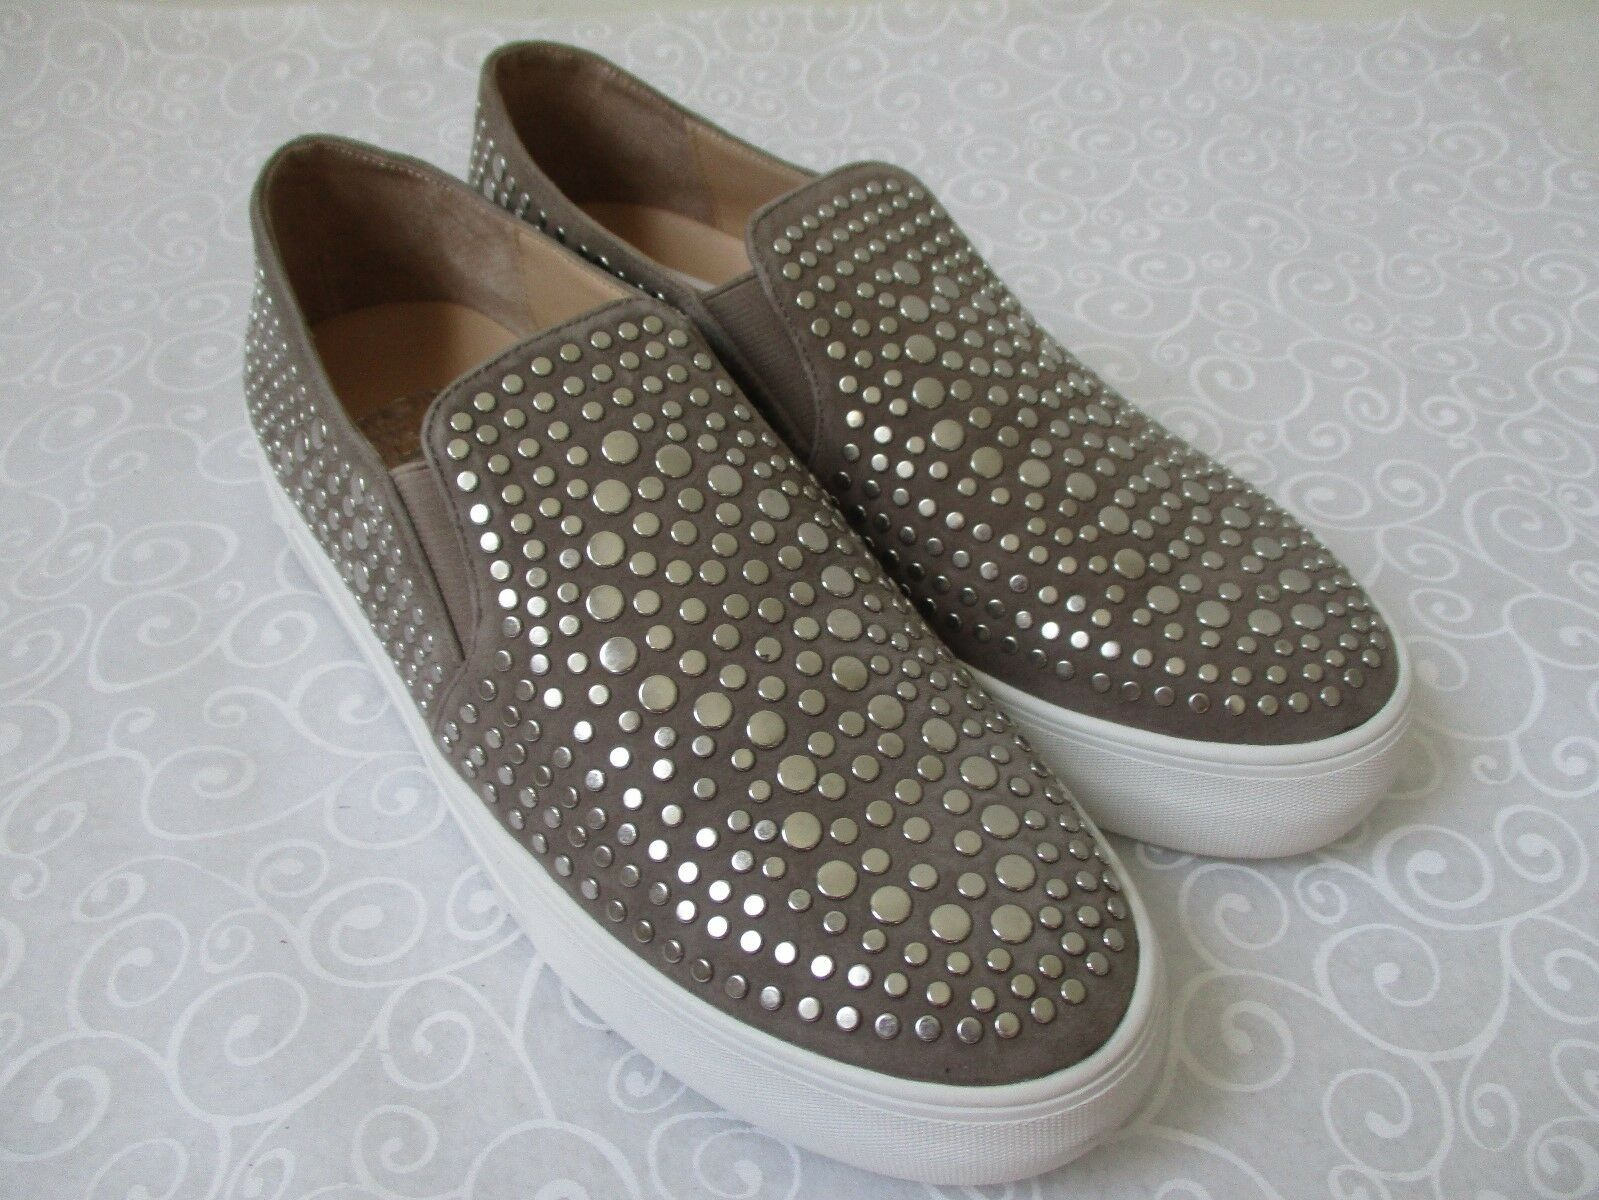 VINCE CAMUTO KINDRA FOXY/SILVER SUEDE LEATHER LEATHER SUEDE LOAFERS SIZE 9 M  - NEW b4926f